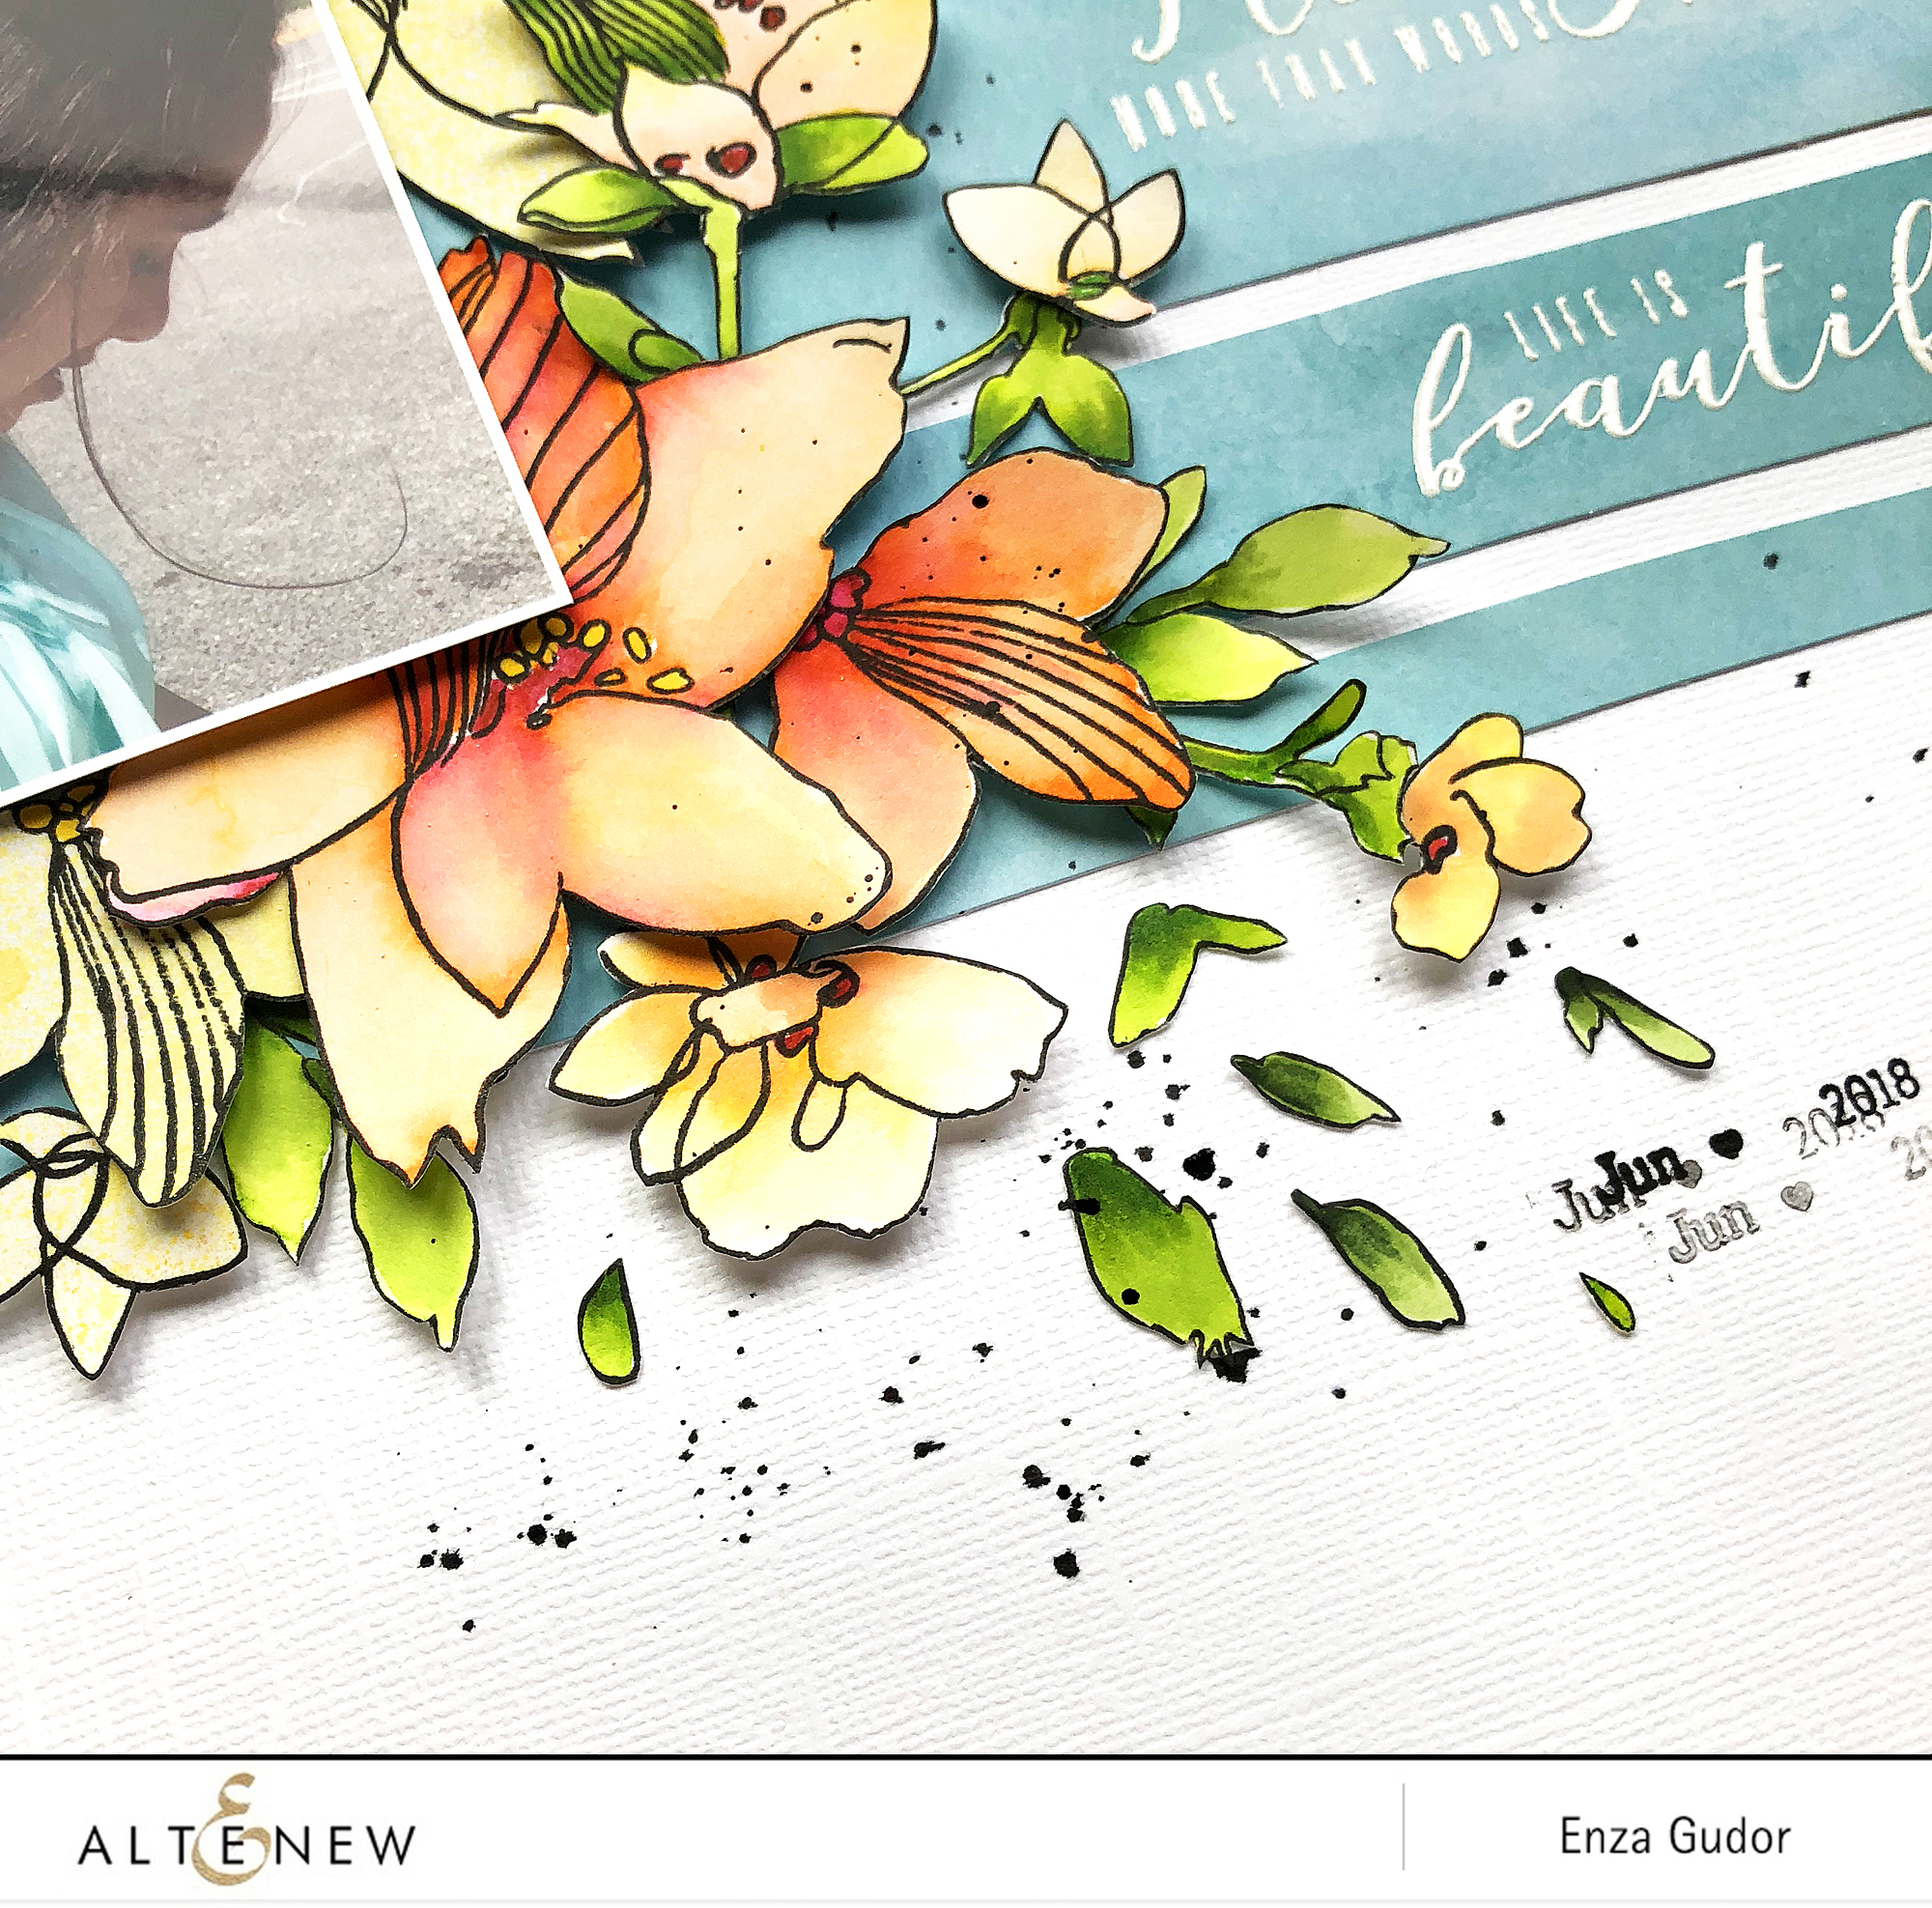 Floral layout by @enzamg for @Altenew using Sketchy Floral Stamp Set. #mixedmedia #altenew #stamping #sketchyfloral #scrapbooking